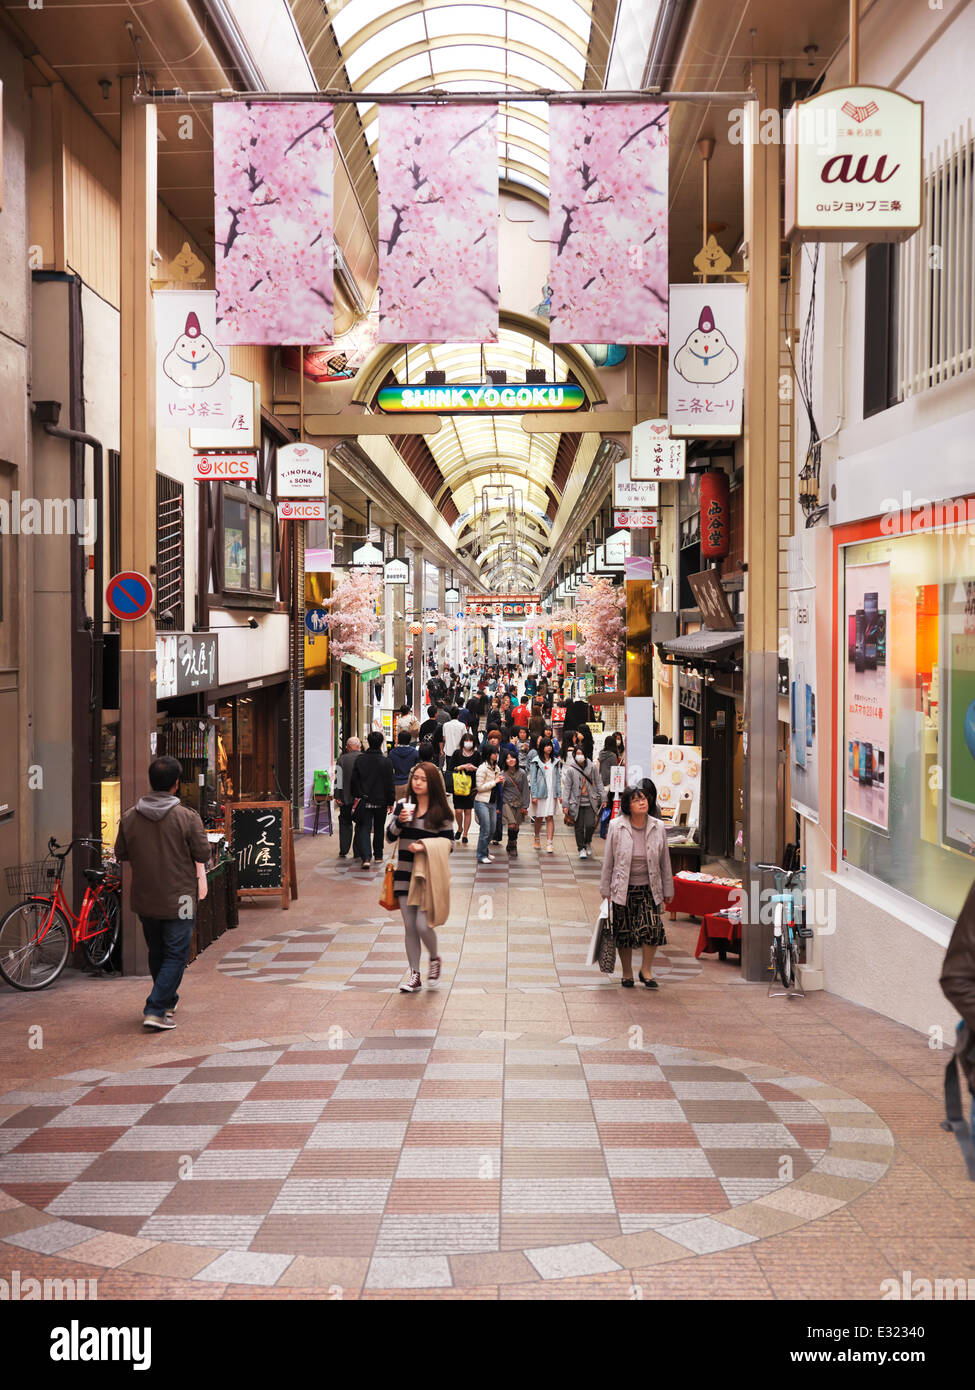 Teramachi and Shinkyogoku shopping arcades, popular covered historical shopping street in downtown Kyoto, Japan. - Stock Image